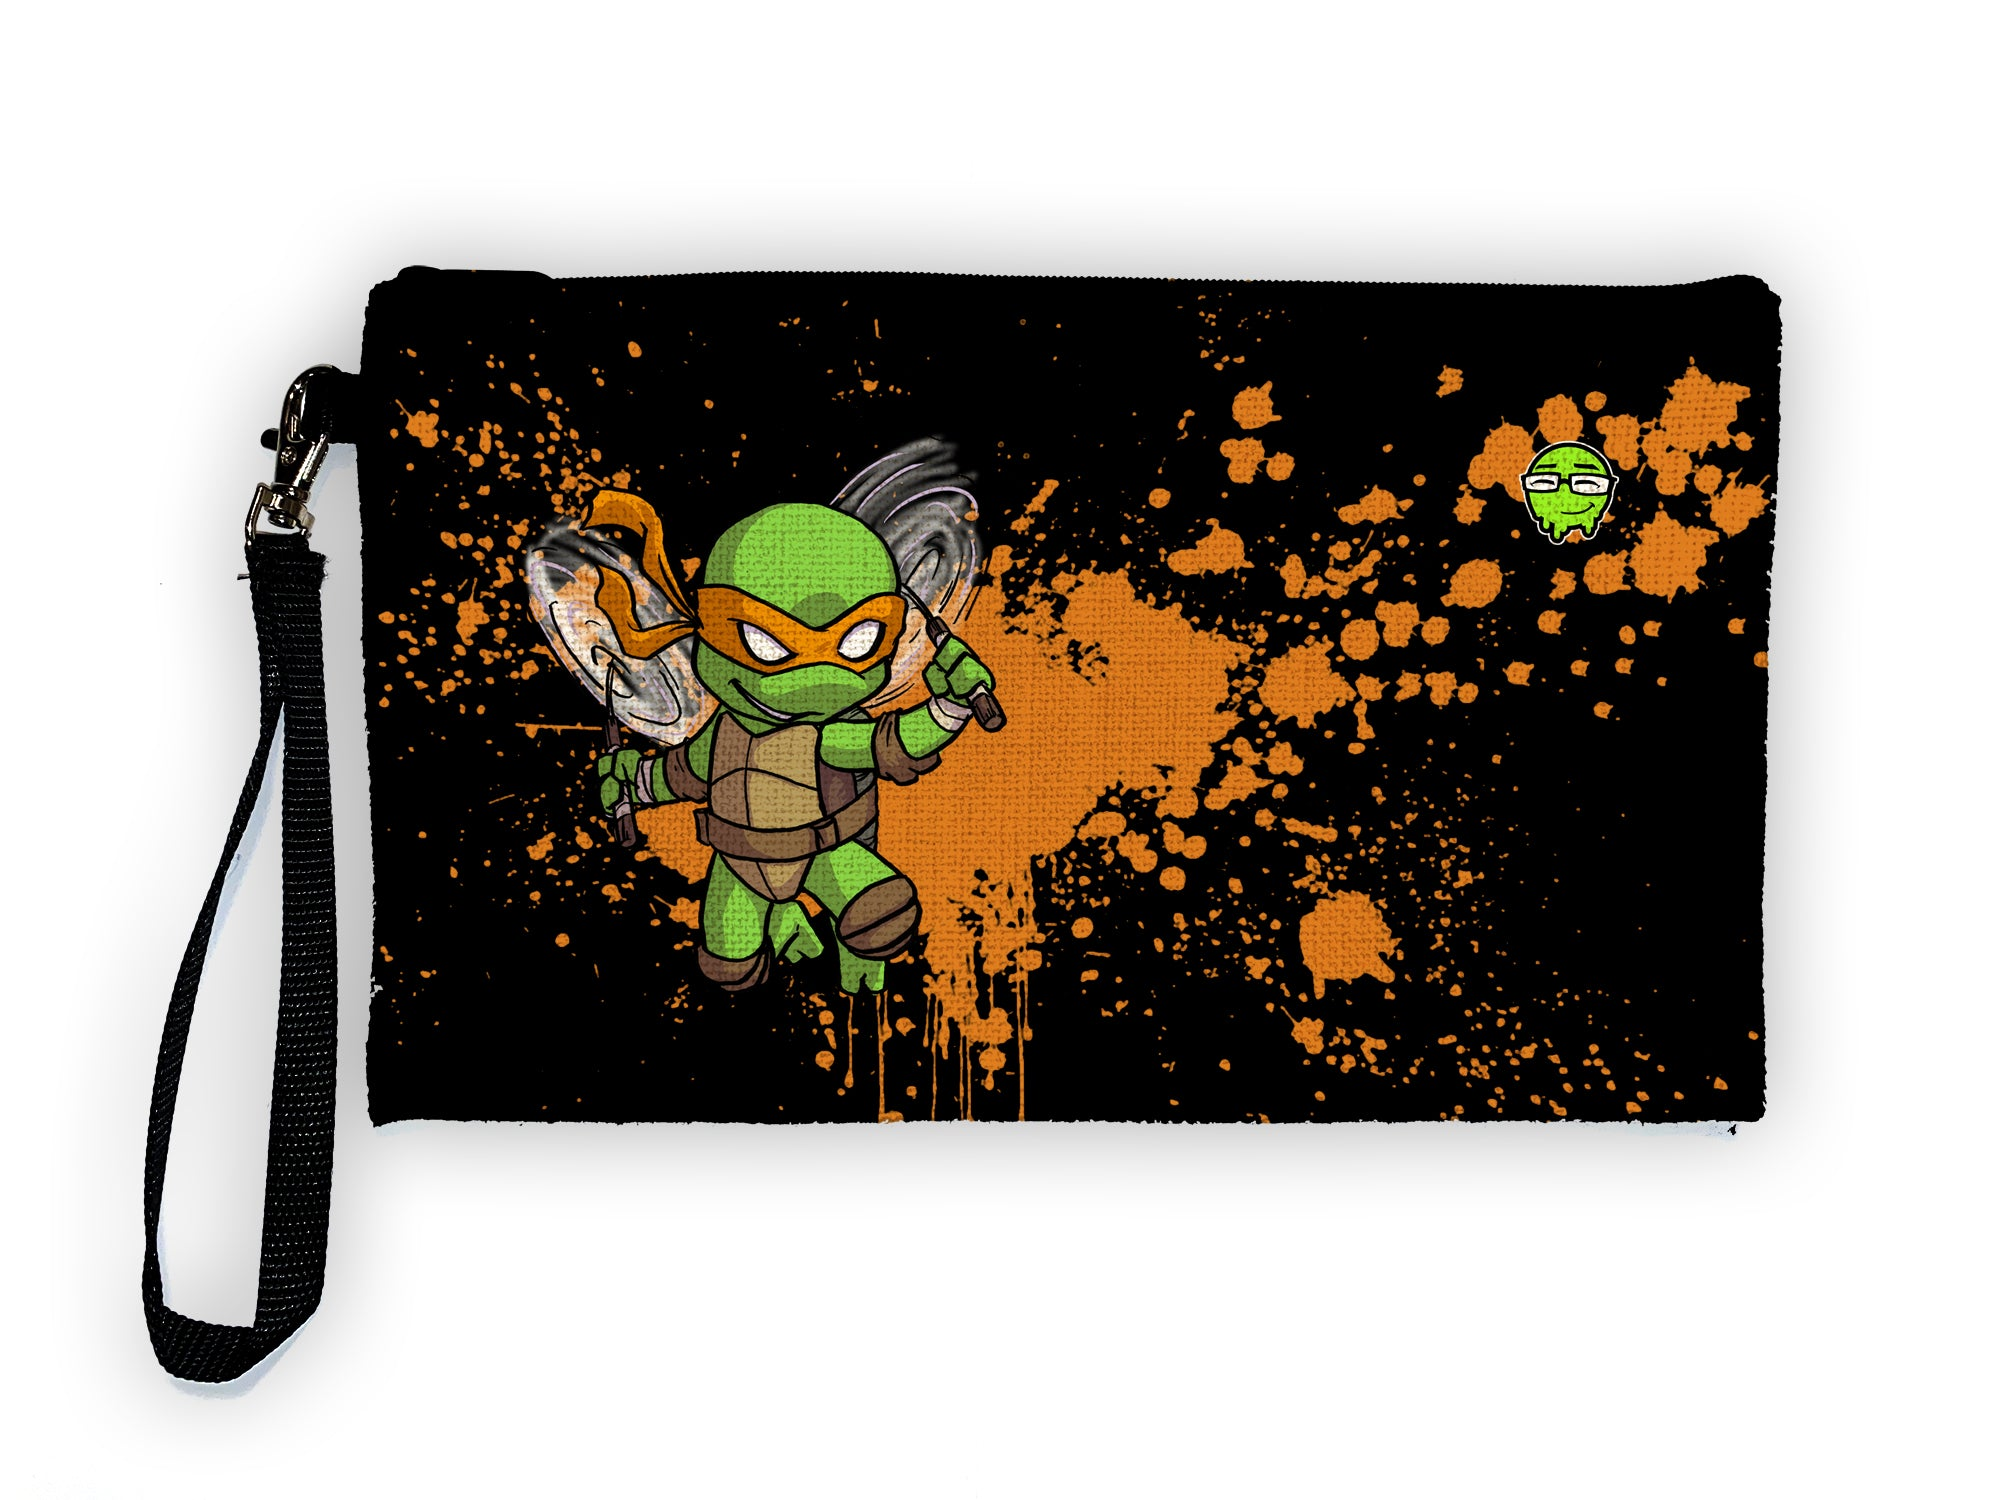 Mikey - Meents Illustrated Authentic Large Pencil/Device Bag